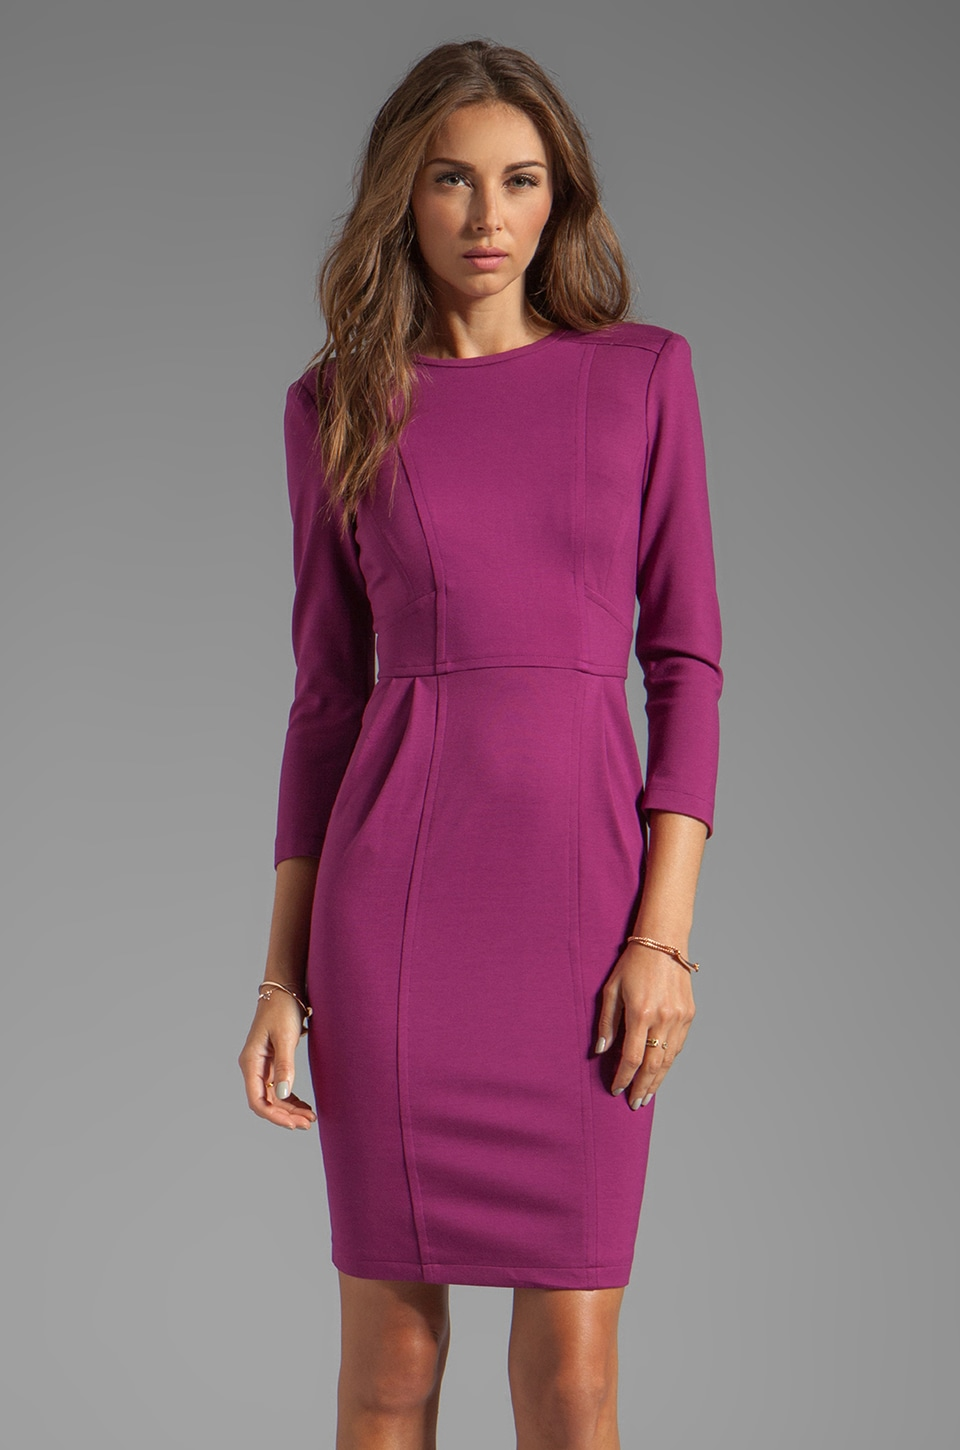 Nanette Lepore Rabat Ponte Dress in Orchid